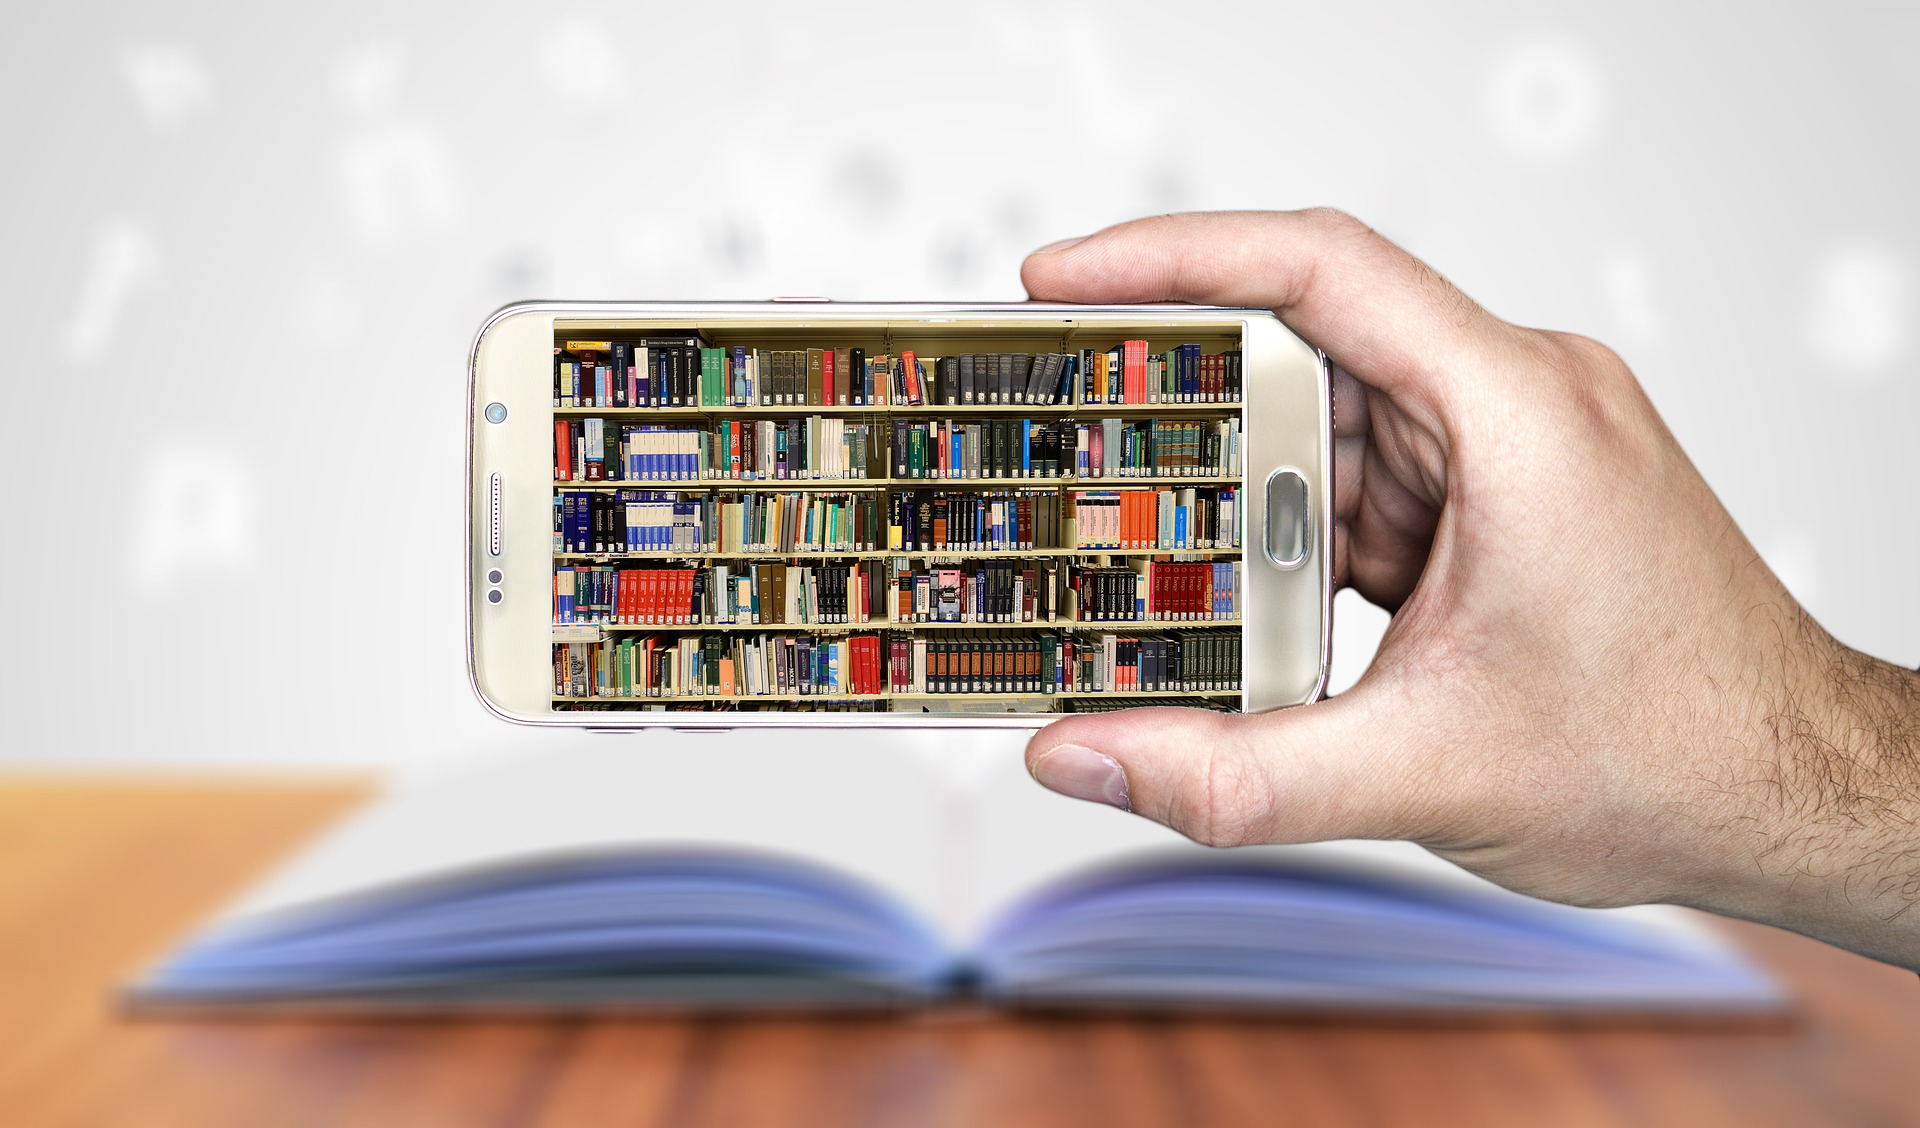 Photo illustration of a smart phone and books